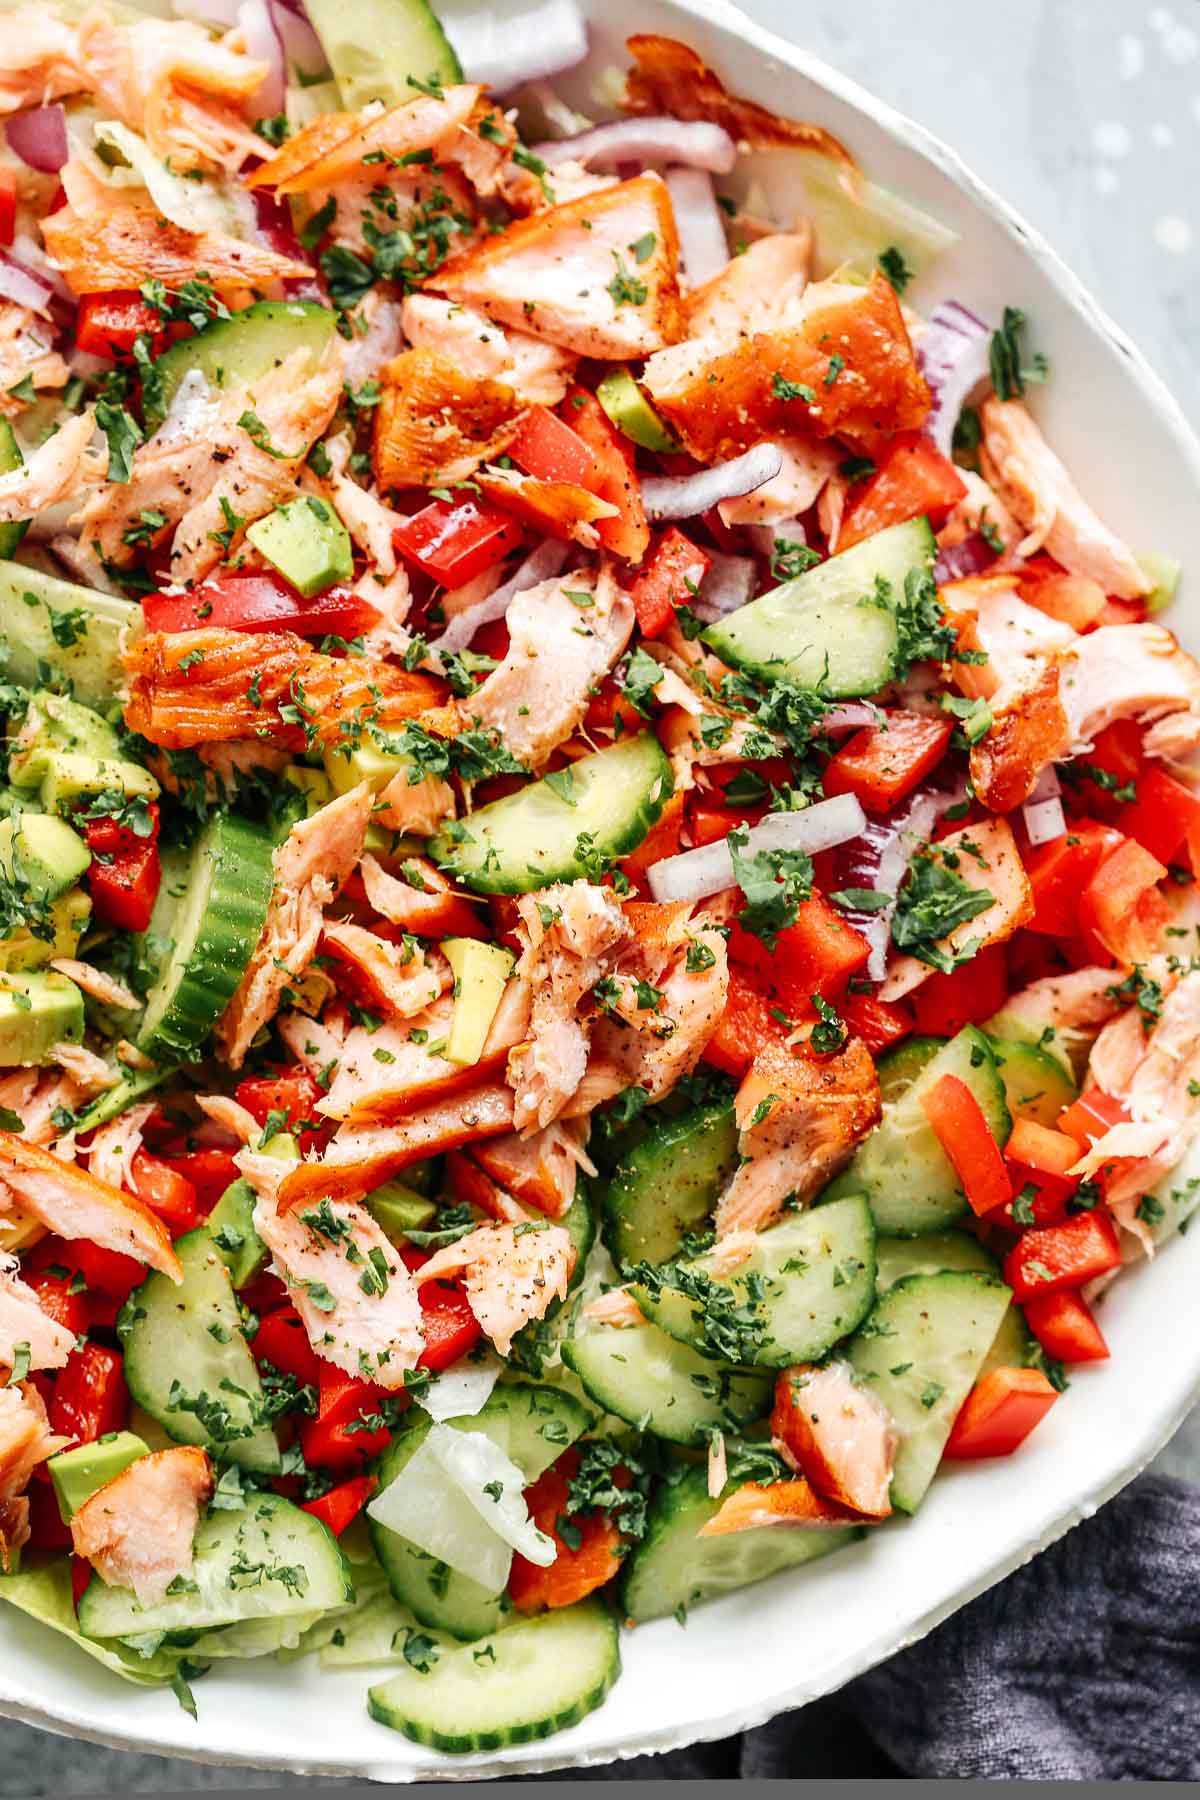 main dish salad with chopped vegetables and fish